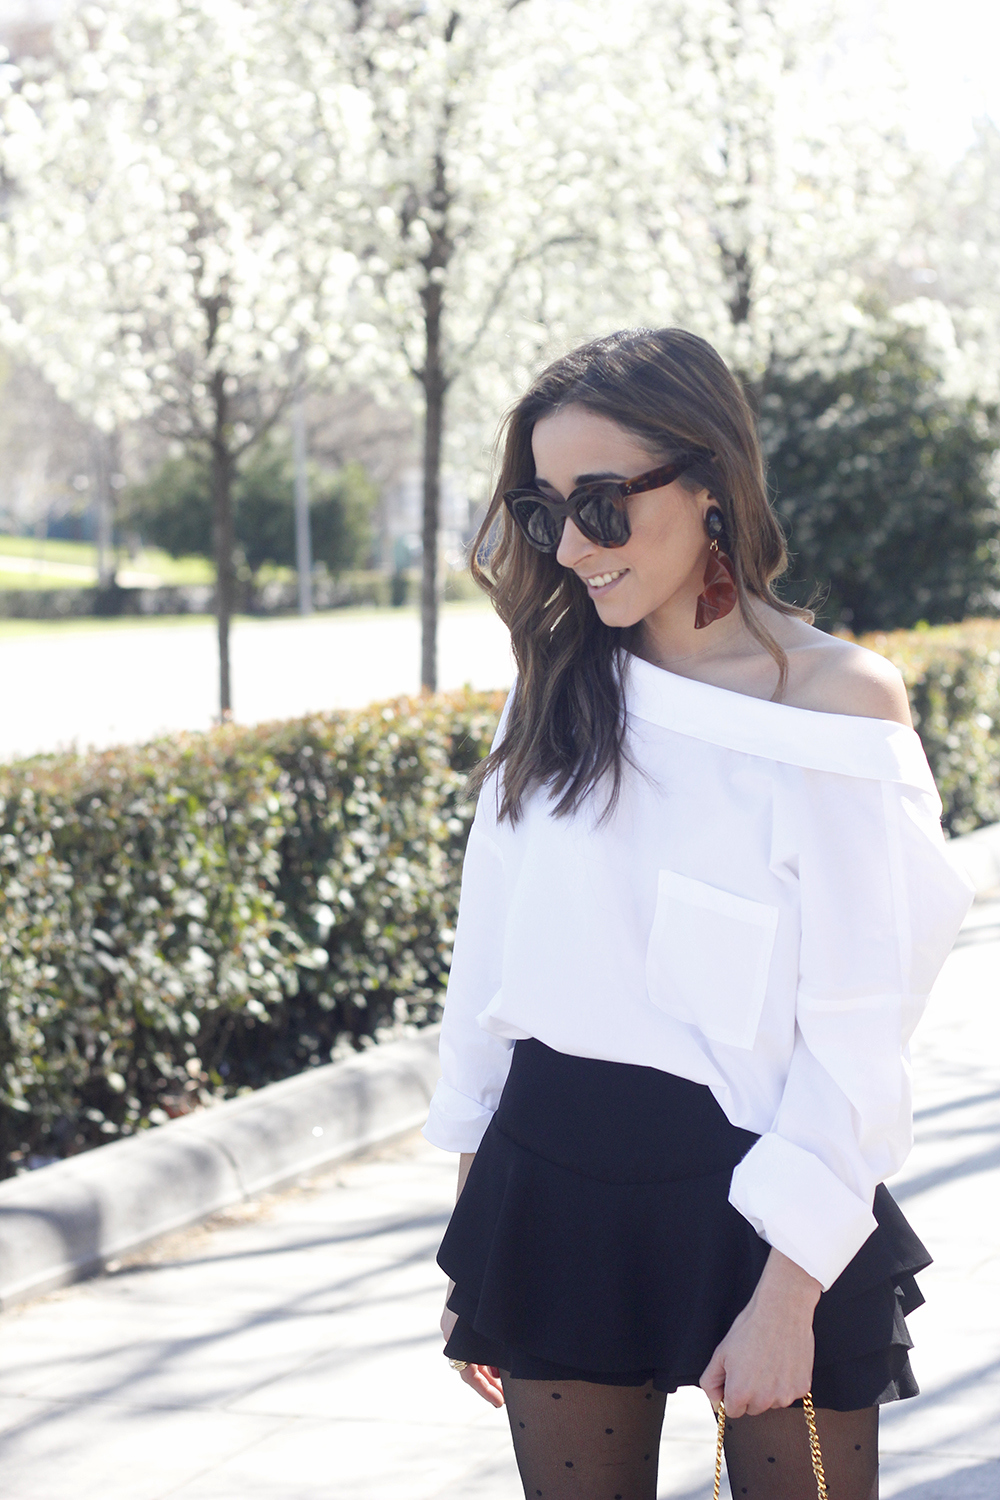 Ruffled shorts white shirt saint lauren bag céline outfit style07